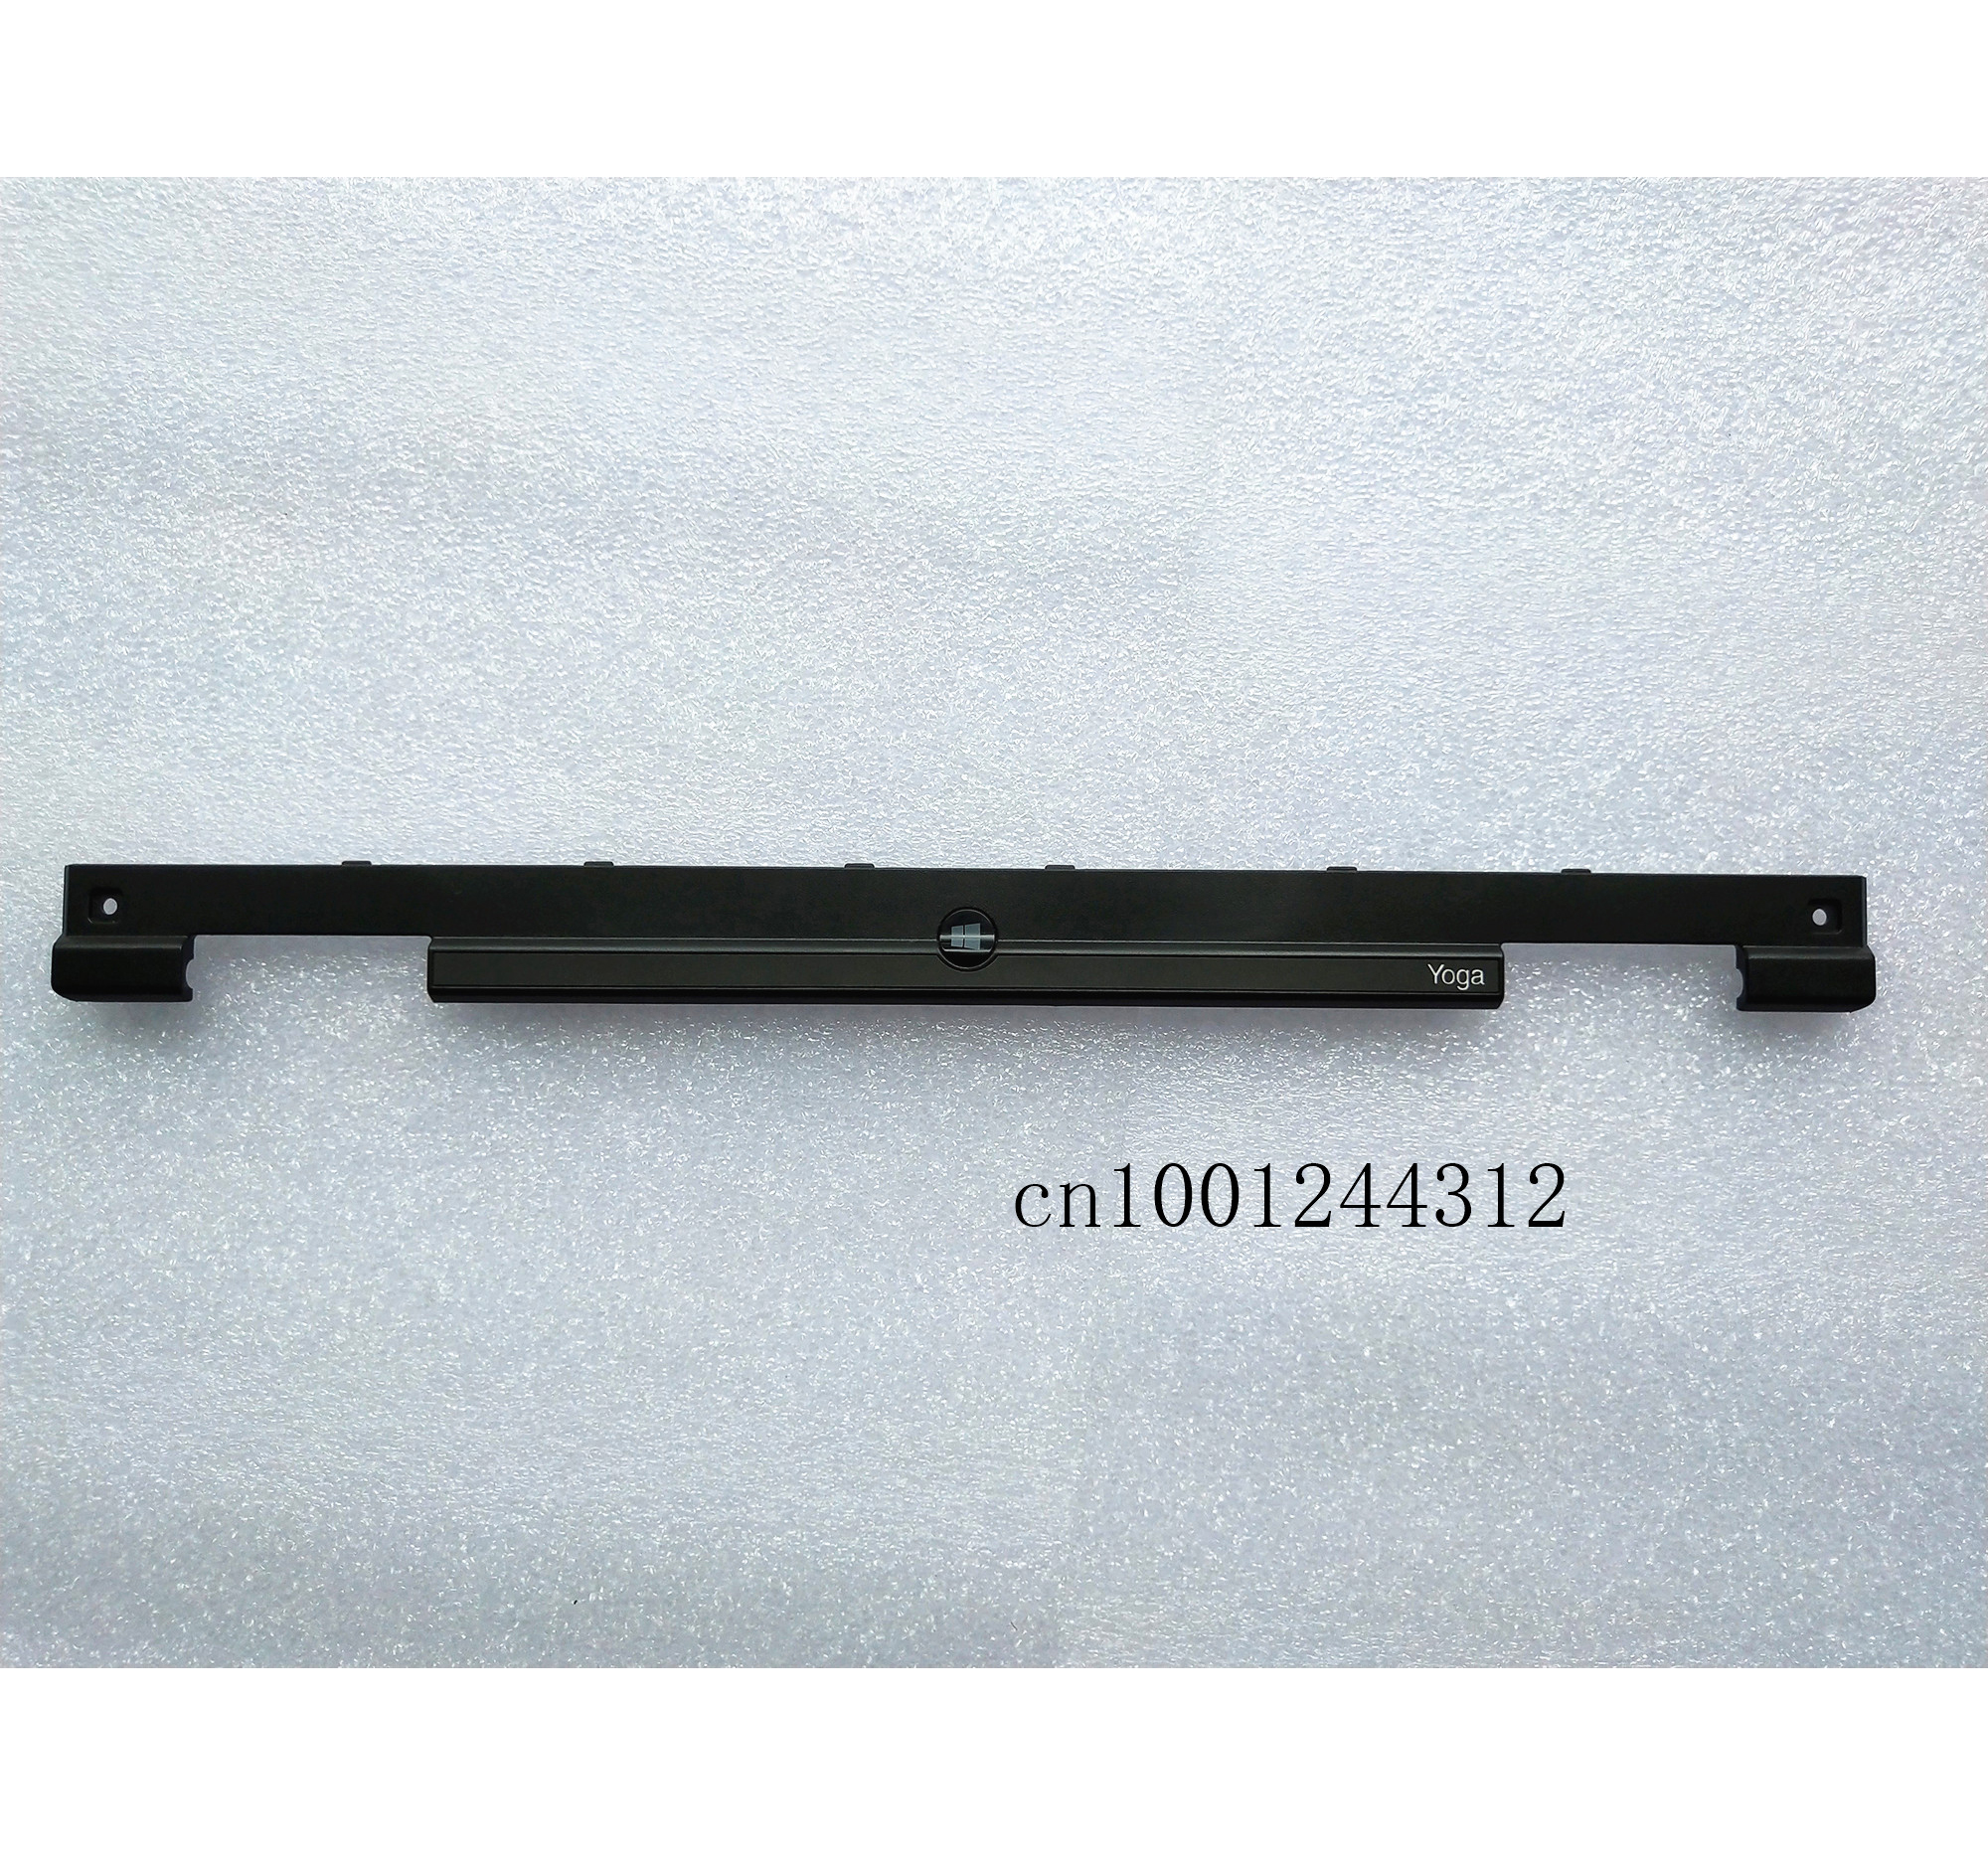 New Original For Lenovo ThinkPad S1 Yoga S240 LCD Front Bezel Cover/ Lcd Hinge Cover 04X6457 04X6455